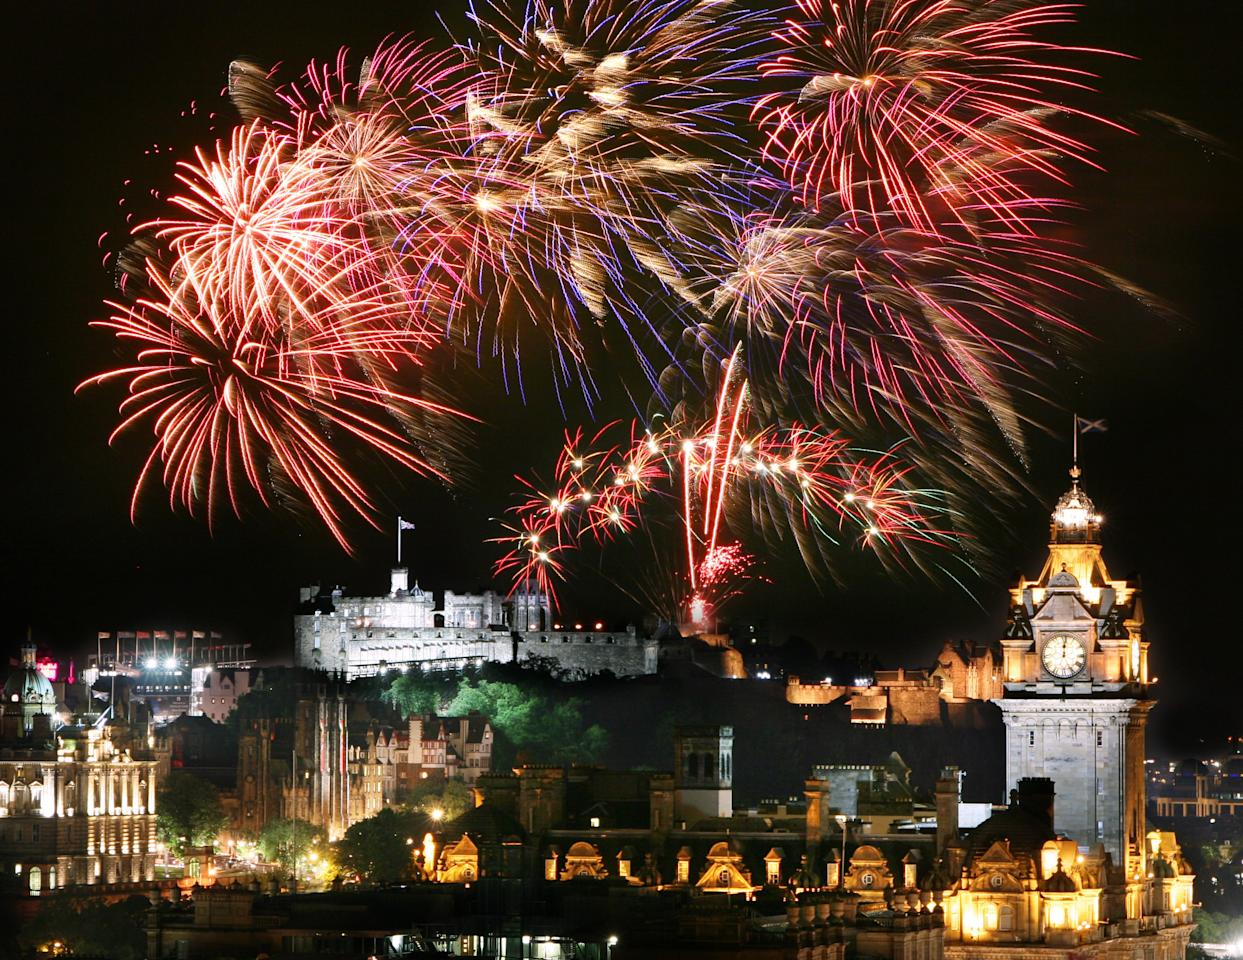 """The <a href=""""https://www.cntraveler.com/destinations/edinburgh?mbid=synd_yahoo_rss"""" target=""""_blank"""">Scottish capital</a> will bid an epic three-day-long farewell to 2019, courtesy of its traditional <a href=""""https://www.edinburghshogmanay.com/"""">Hogmanay celebrations</a>. The event kicks off with a torchlight procession on December 30, and segues into a massive street party, flagship outdoor concert (headlined by Mark Ronson this year), and a midnight fireworks display over <a href=""""https://www.cntraveler.com/activities/edinburgh/edinburgh-castle?mbid=synd_yahoo_rss"""" target=""""_blank"""">Edinburgh Castle</a>. After all that fun, wind down with folk concerts and the <a href=""""https://www.edinburghshogmanay.com/whats-on/first-footers-family-ceilidh"""">first ceilidh</a> of the New Year on January 1."""